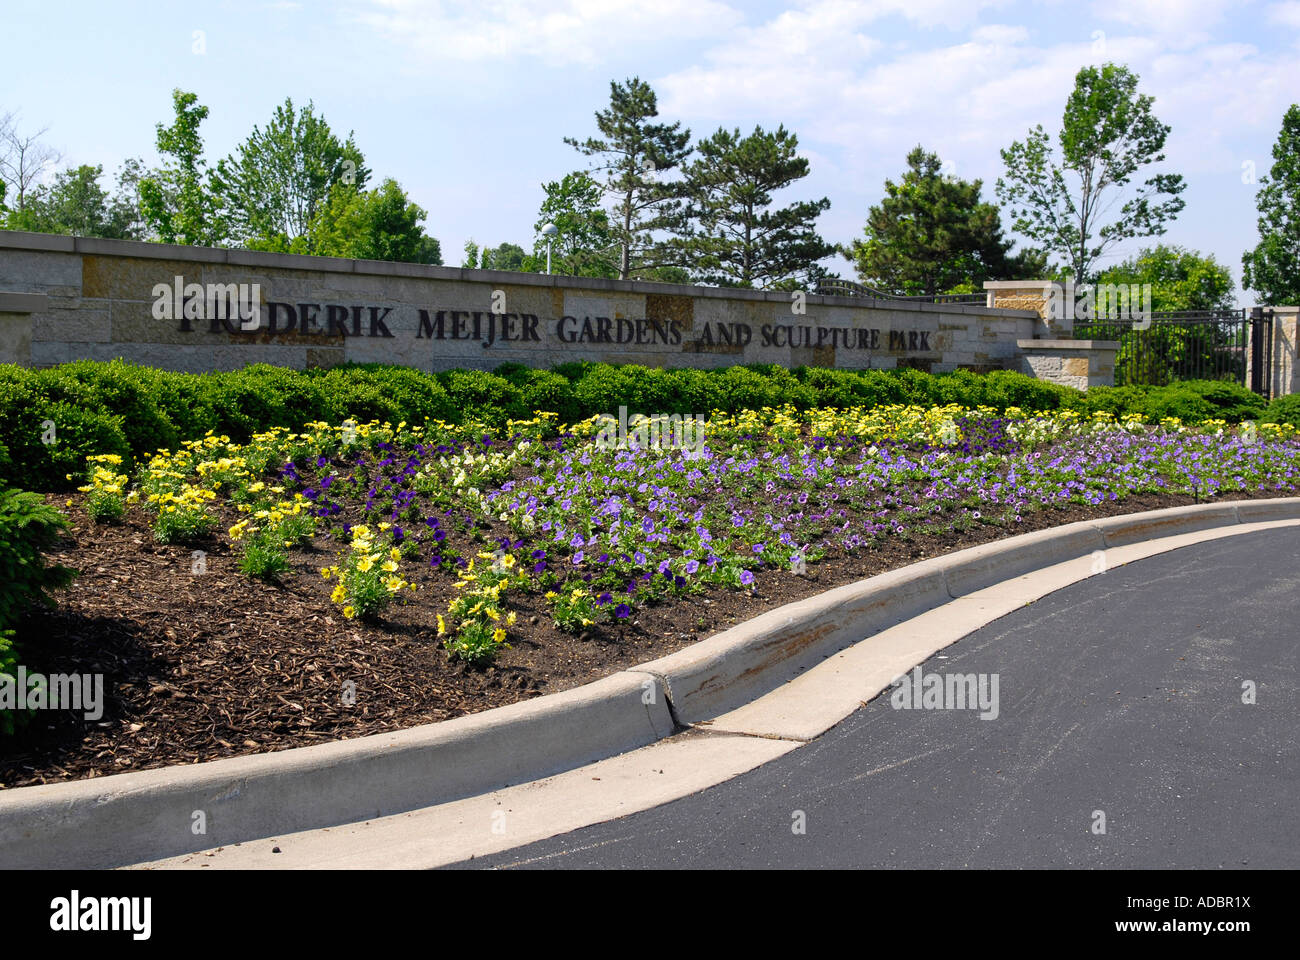 The frederik meijer gardens and sculpture park in grand Frederik meijer gardens